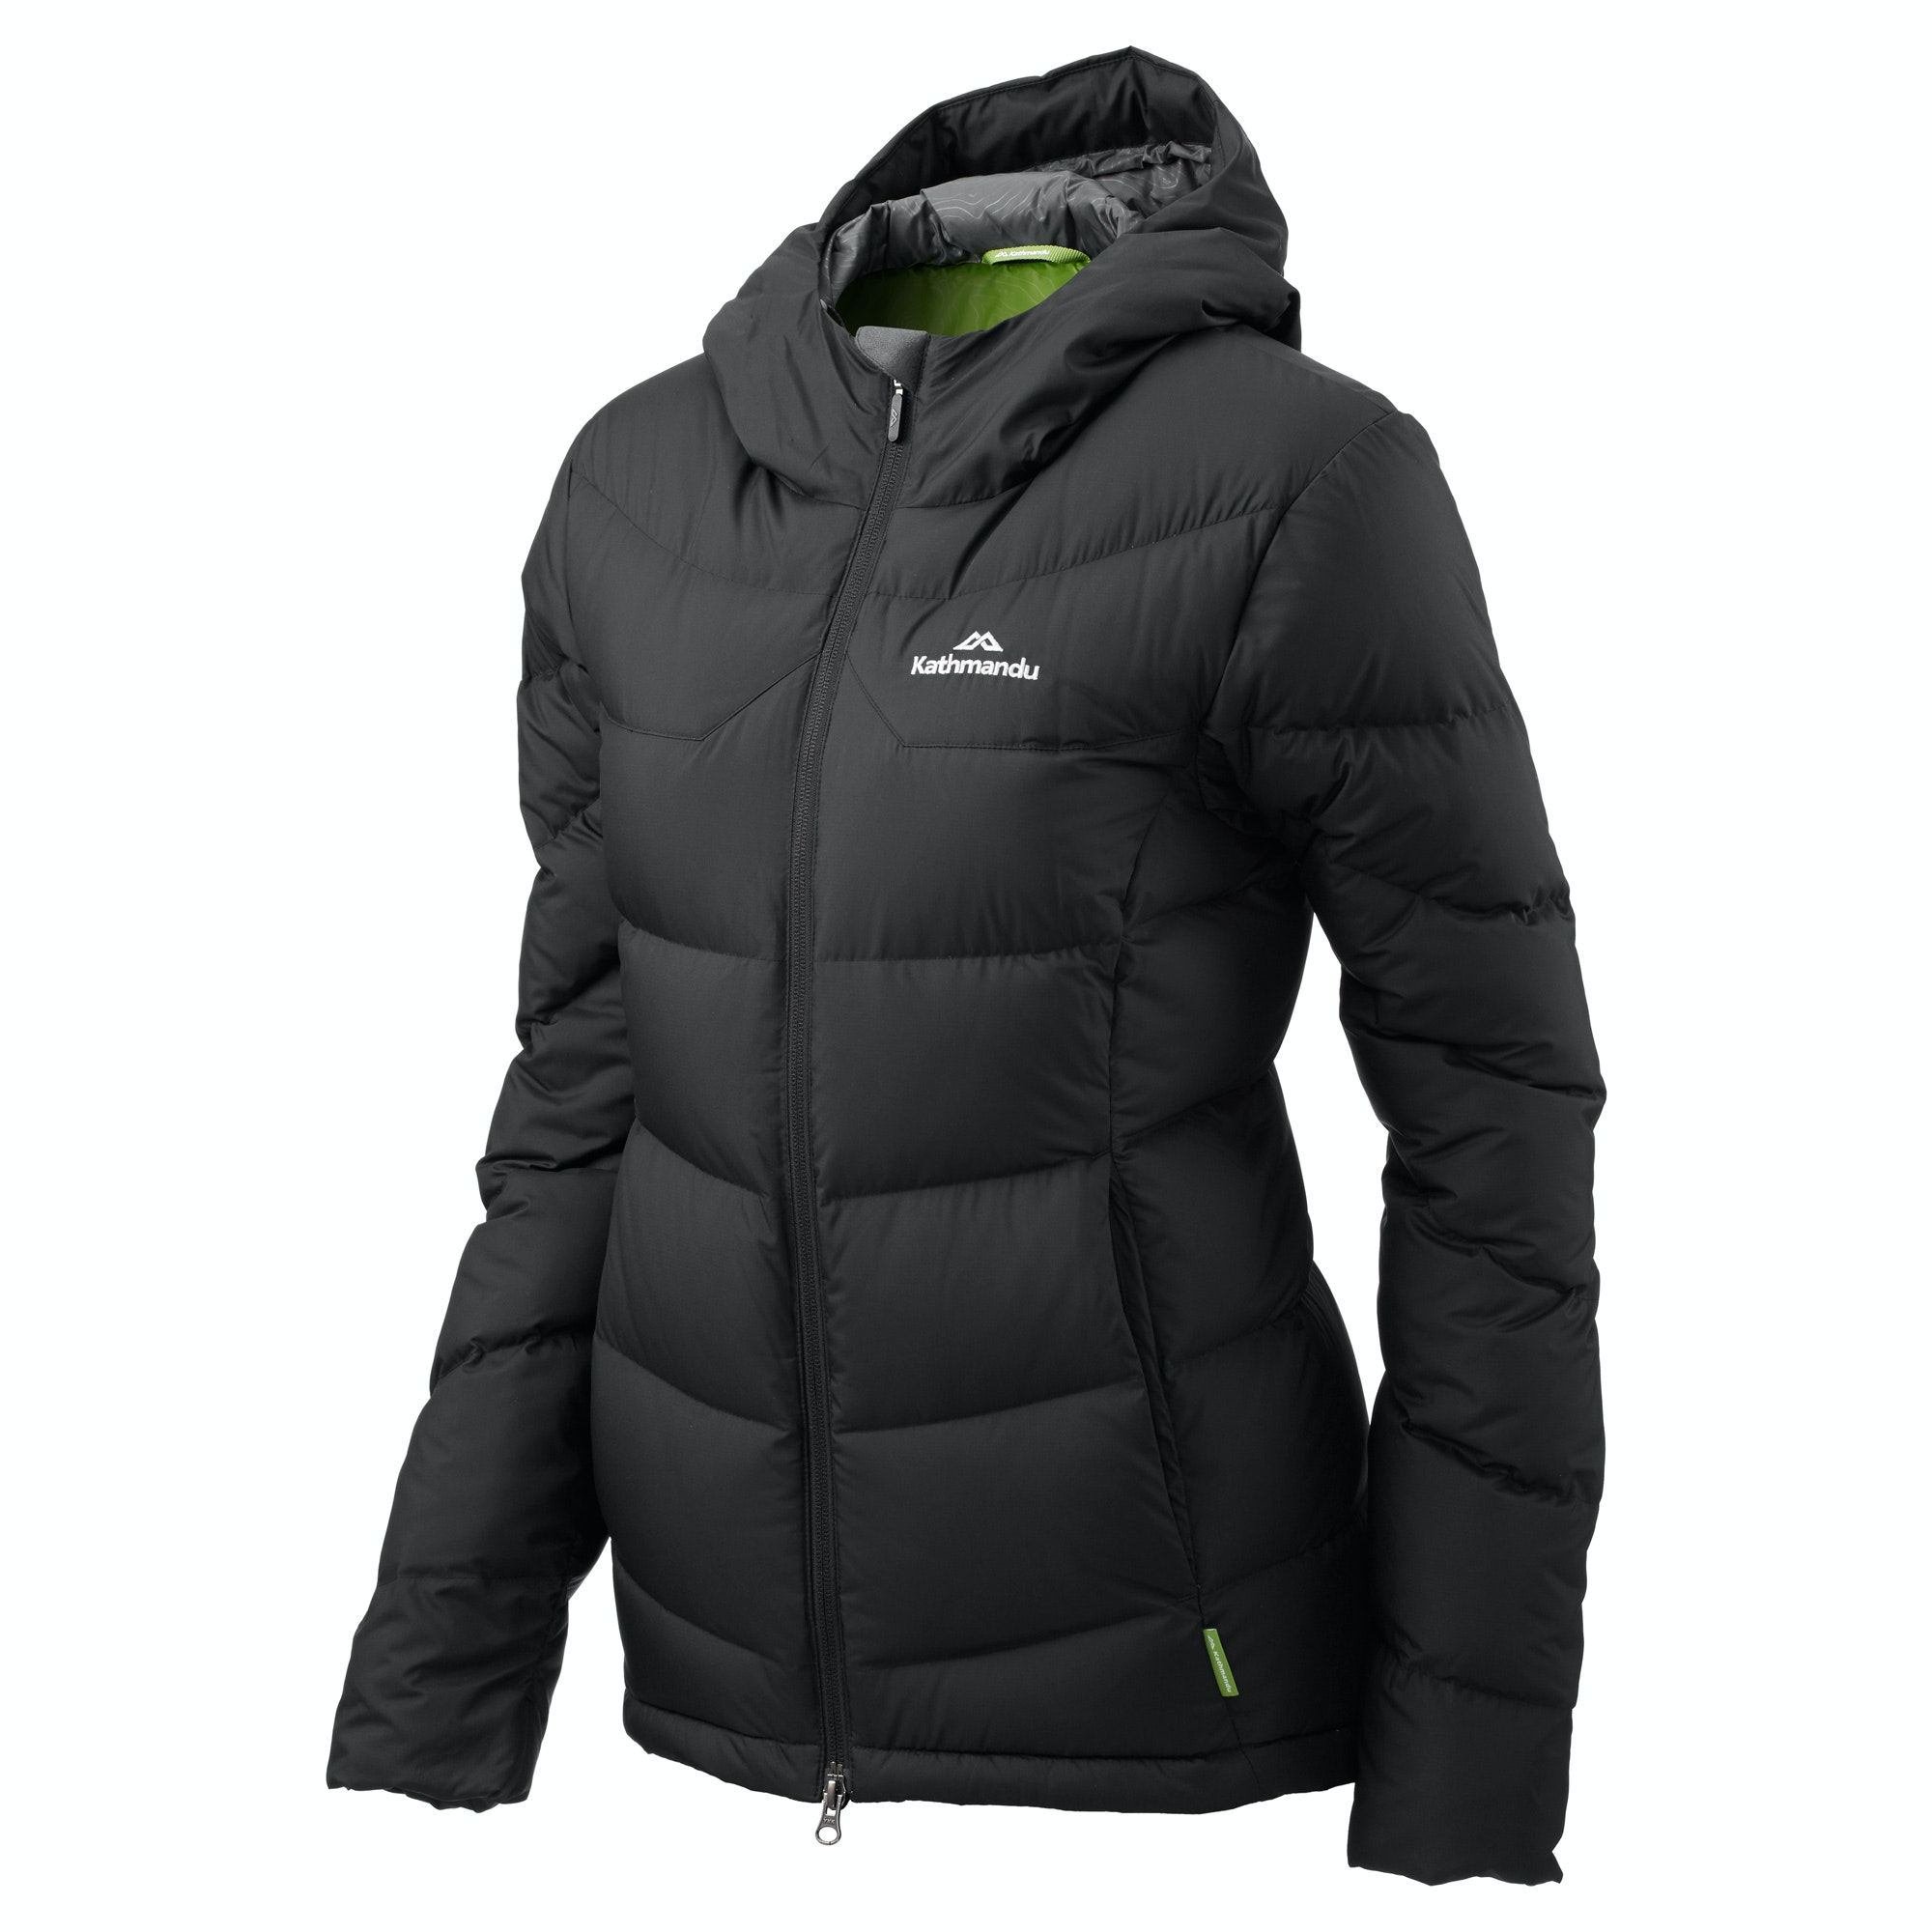 Womens hooded down jacket